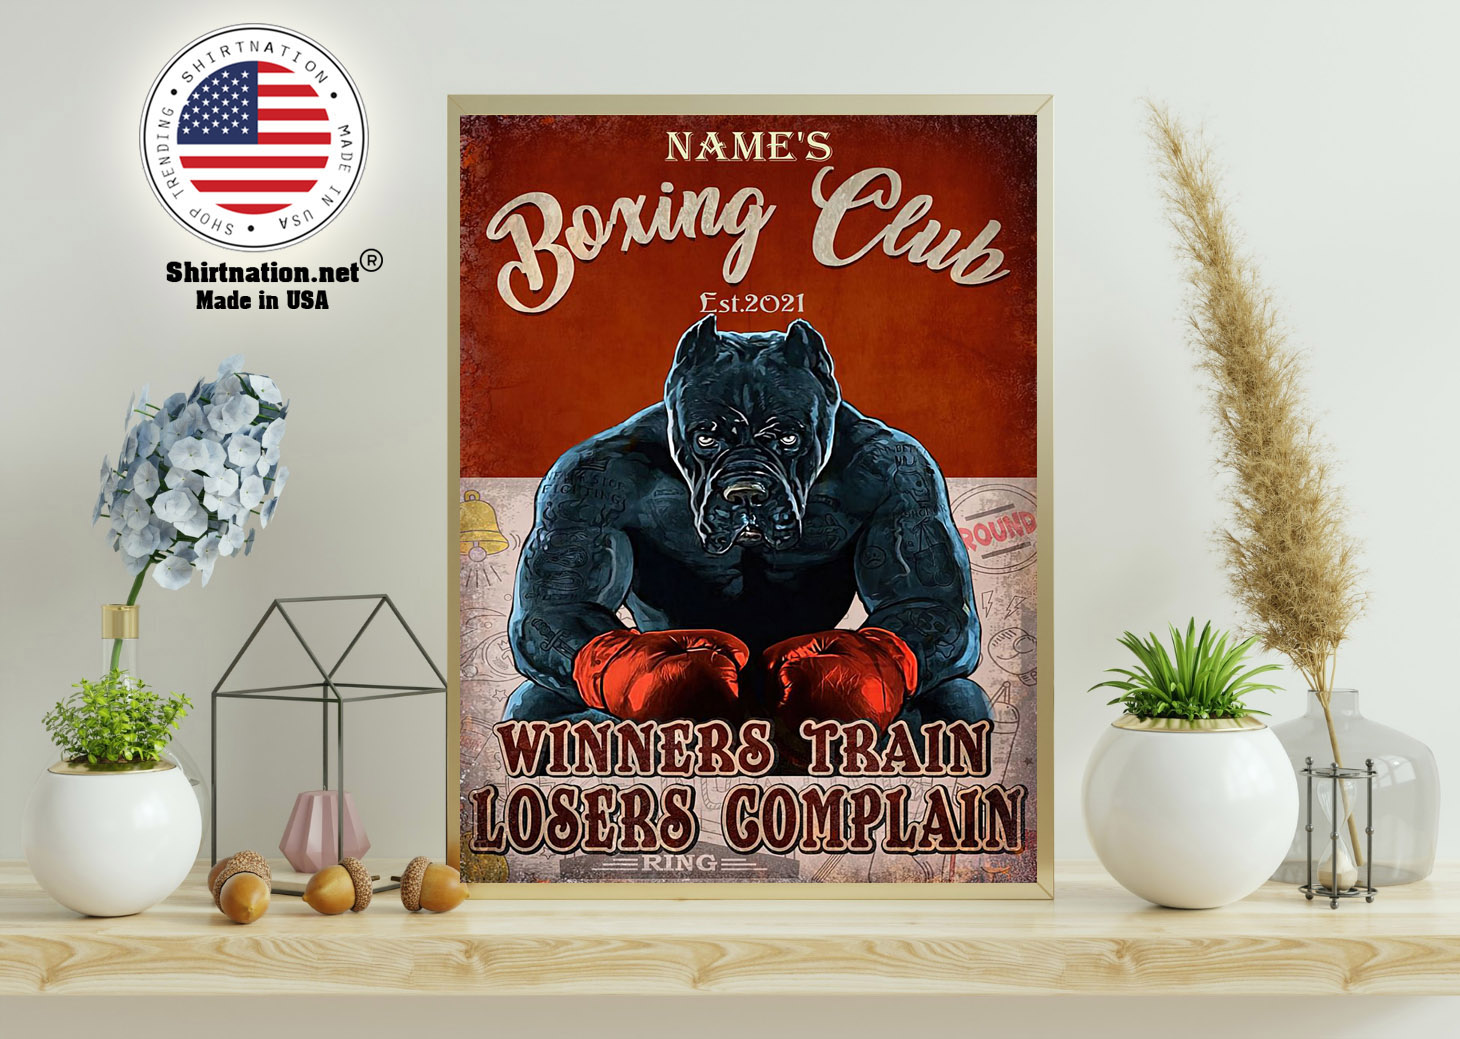 Boxing club winners train losers complain poster 11